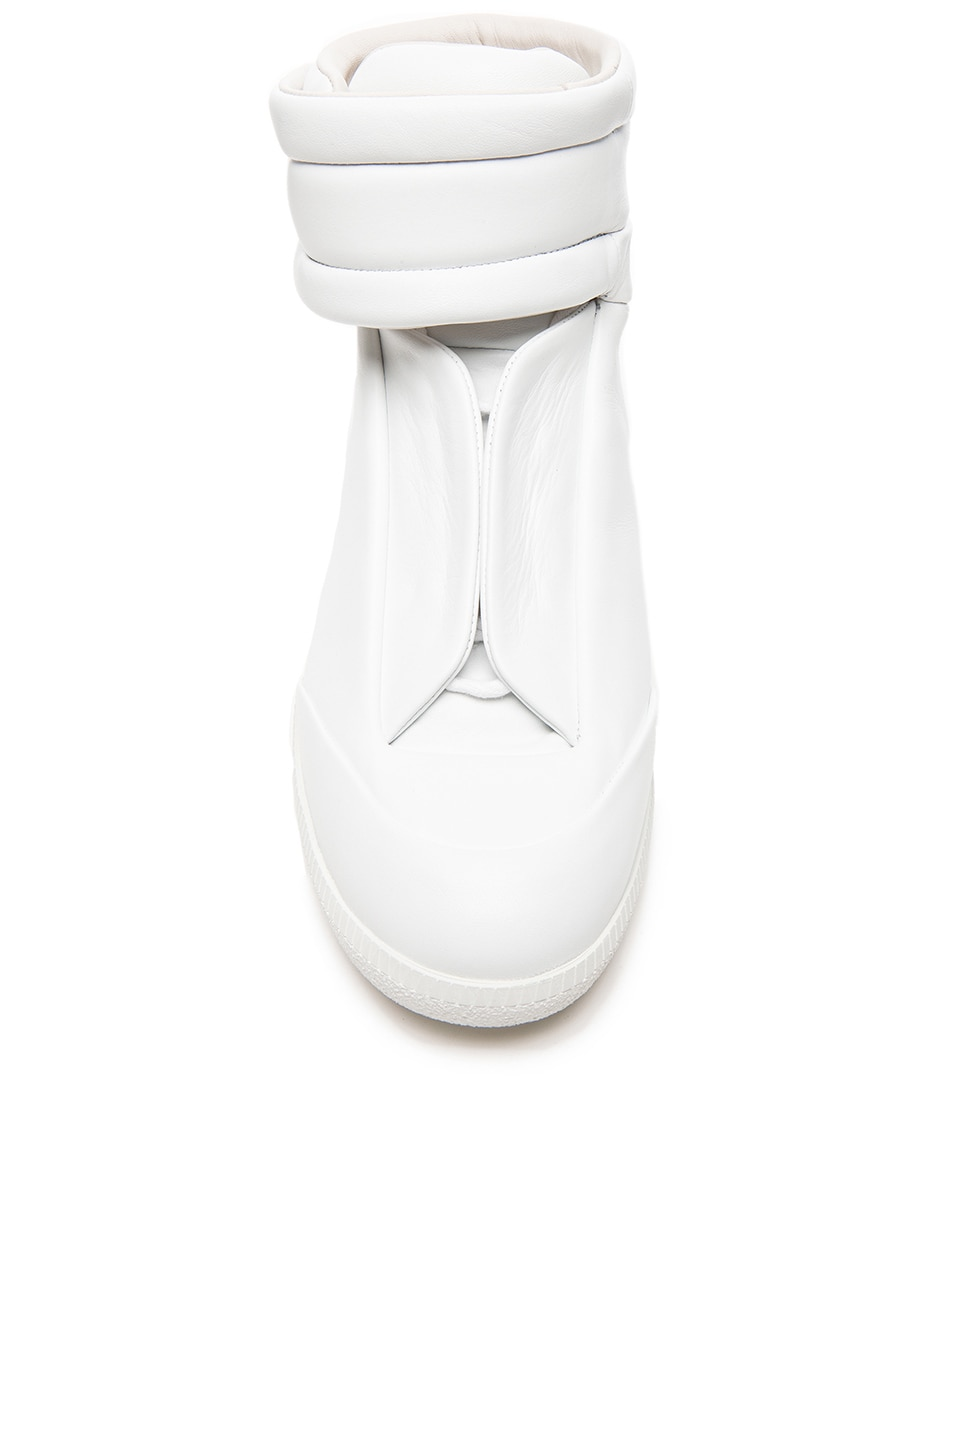 MAISON MARTIN MARGIELA Maison Margiela Men'S White High Top Future Sneakers